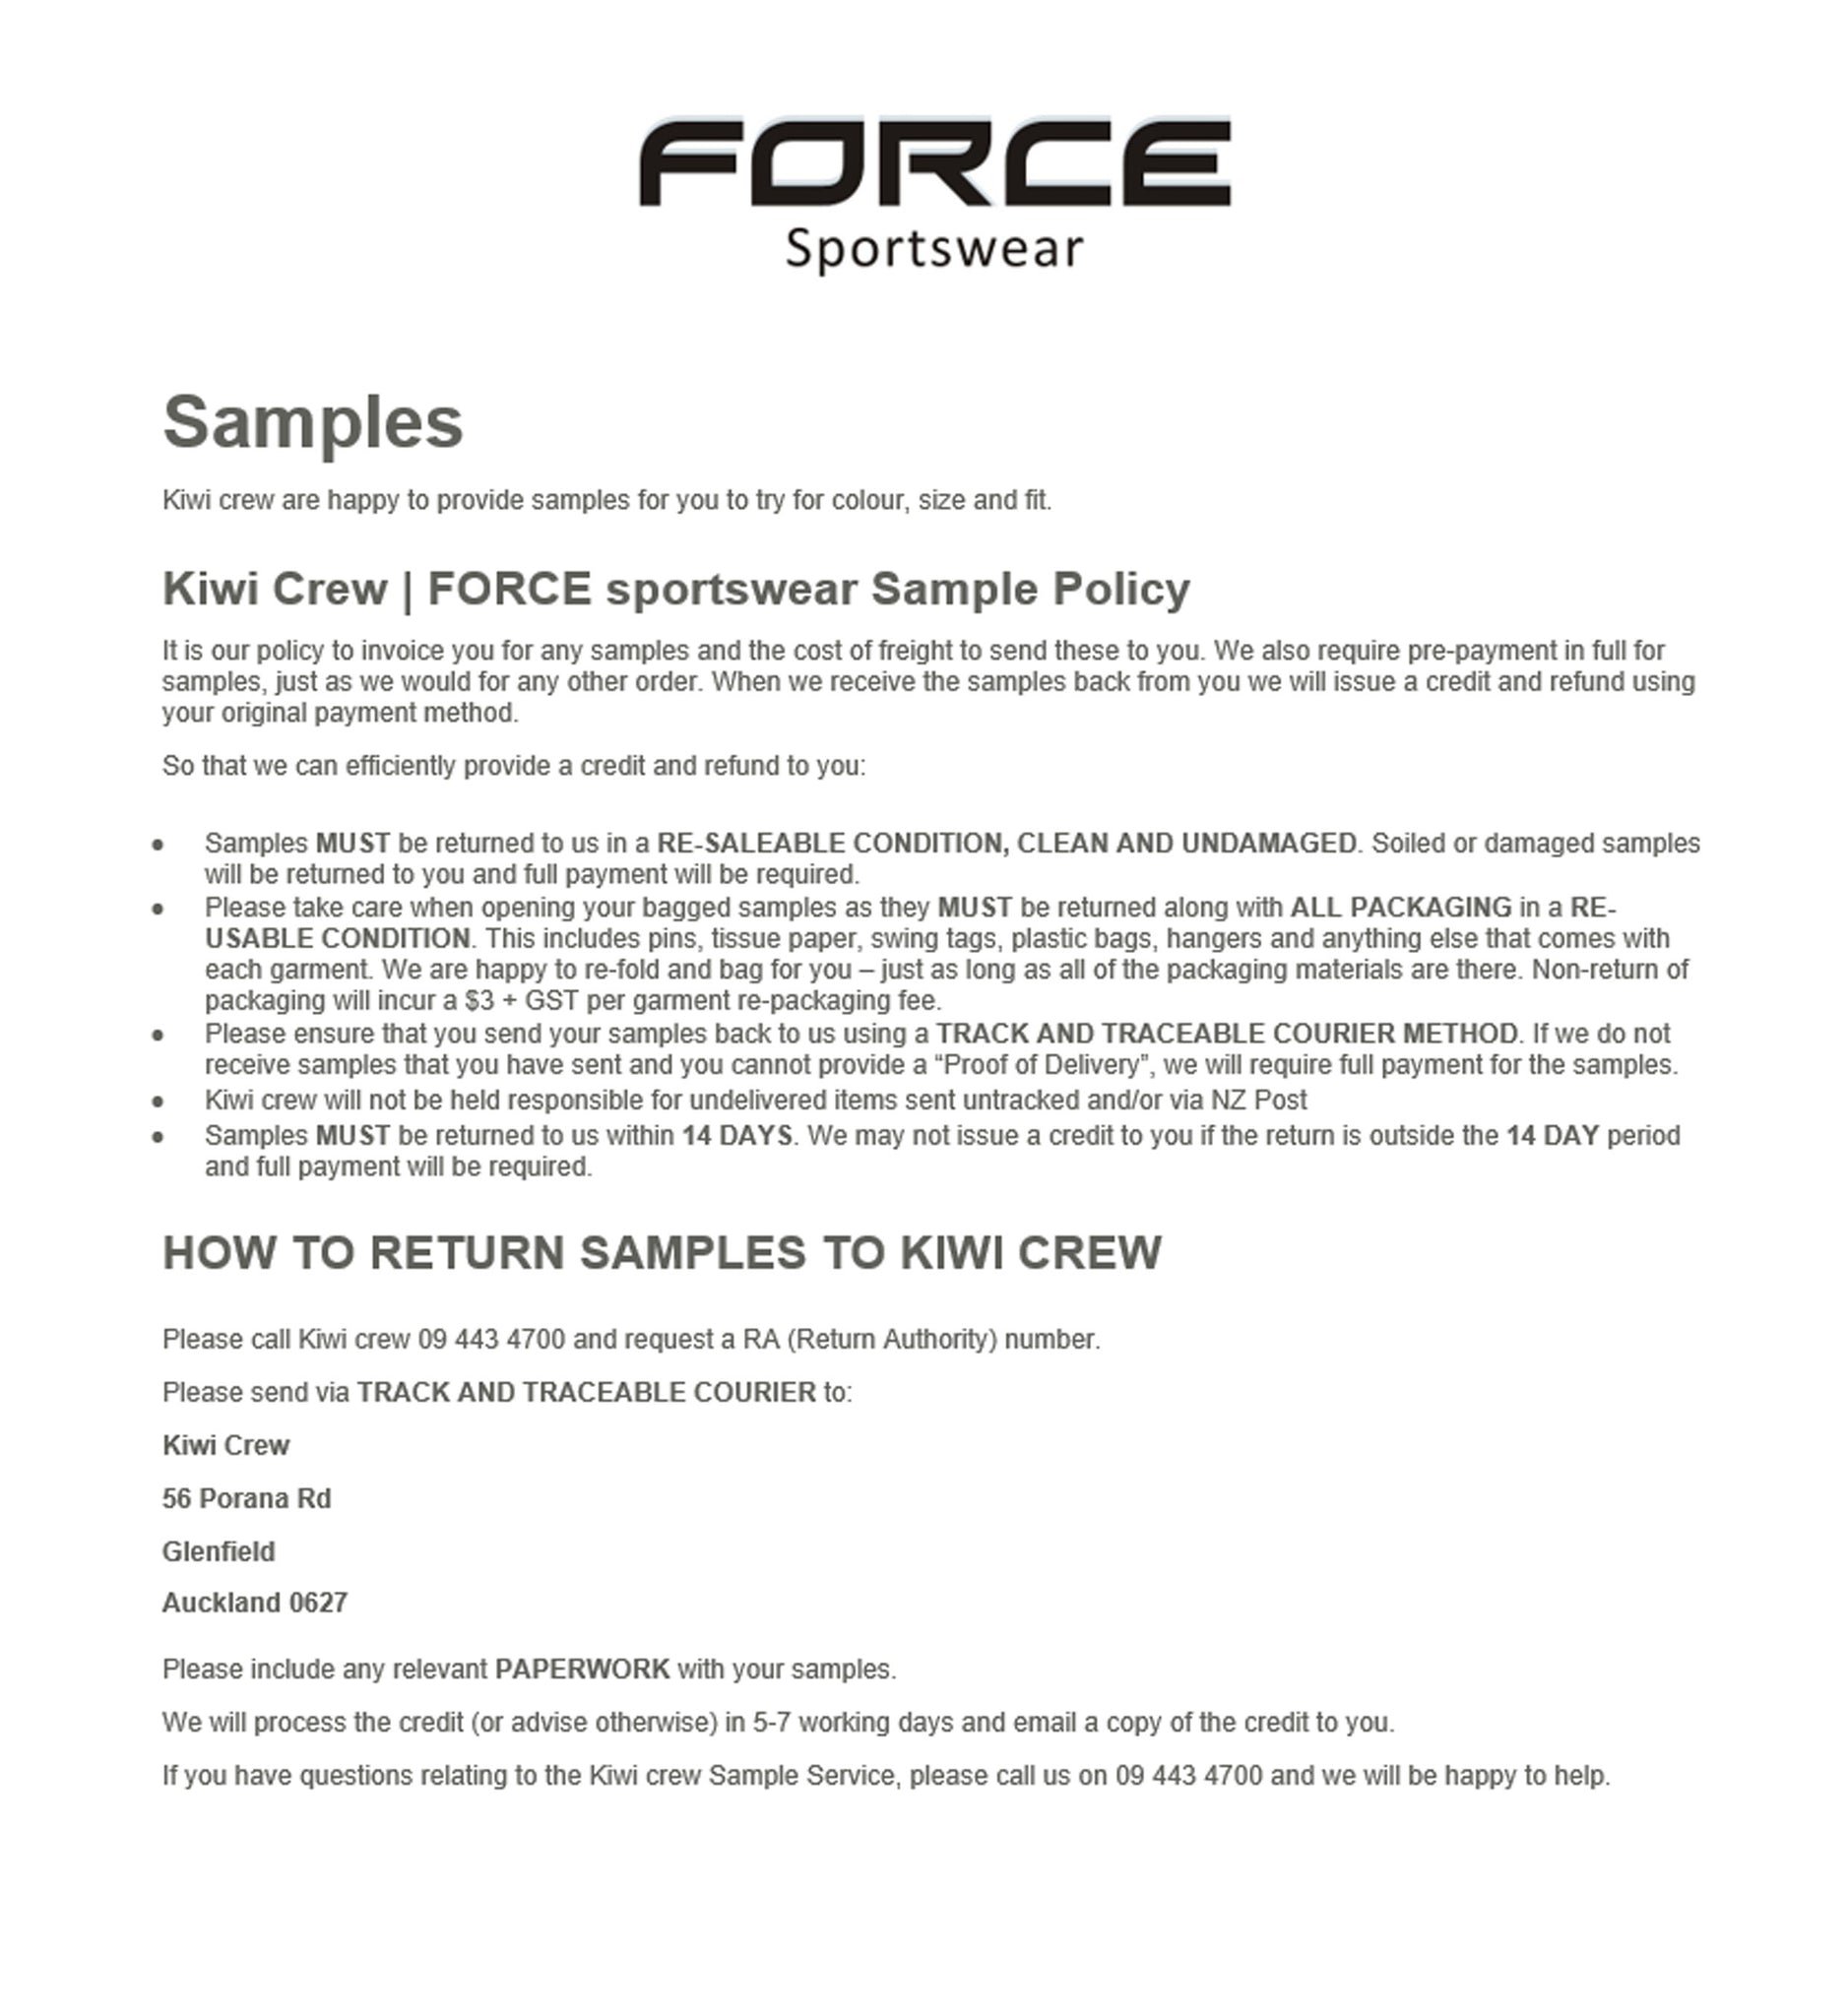 Sample Policy   Forcesportsnz